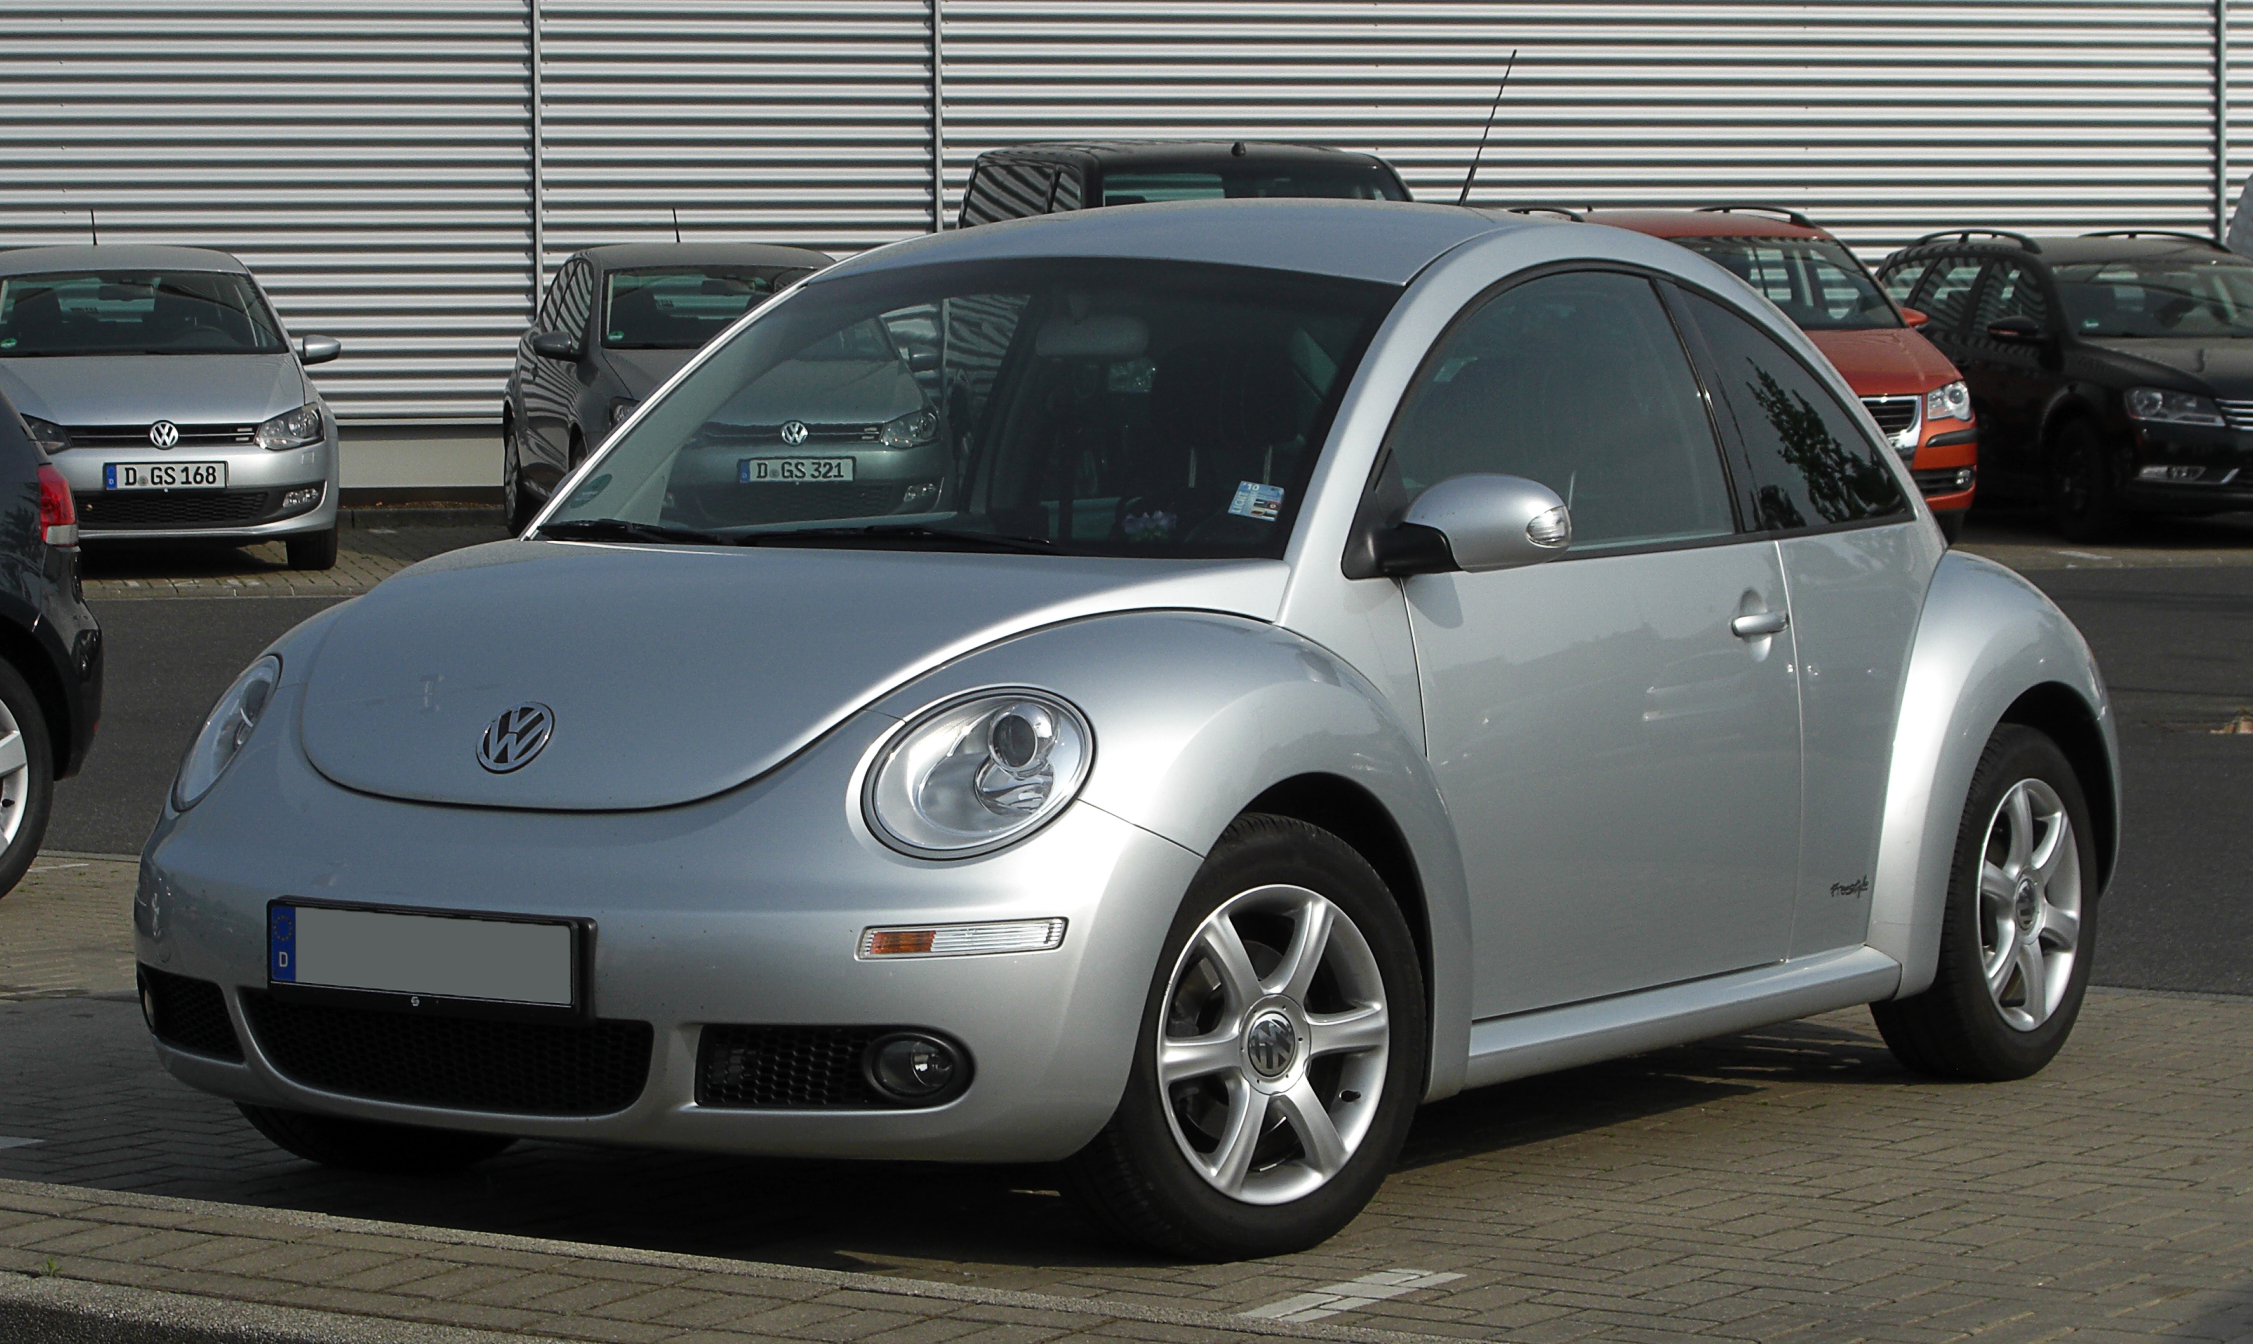 vw new beetle freestyle 2 facelift frontansicht 7 mai 2011 d. Black Bedroom Furniture Sets. Home Design Ideas